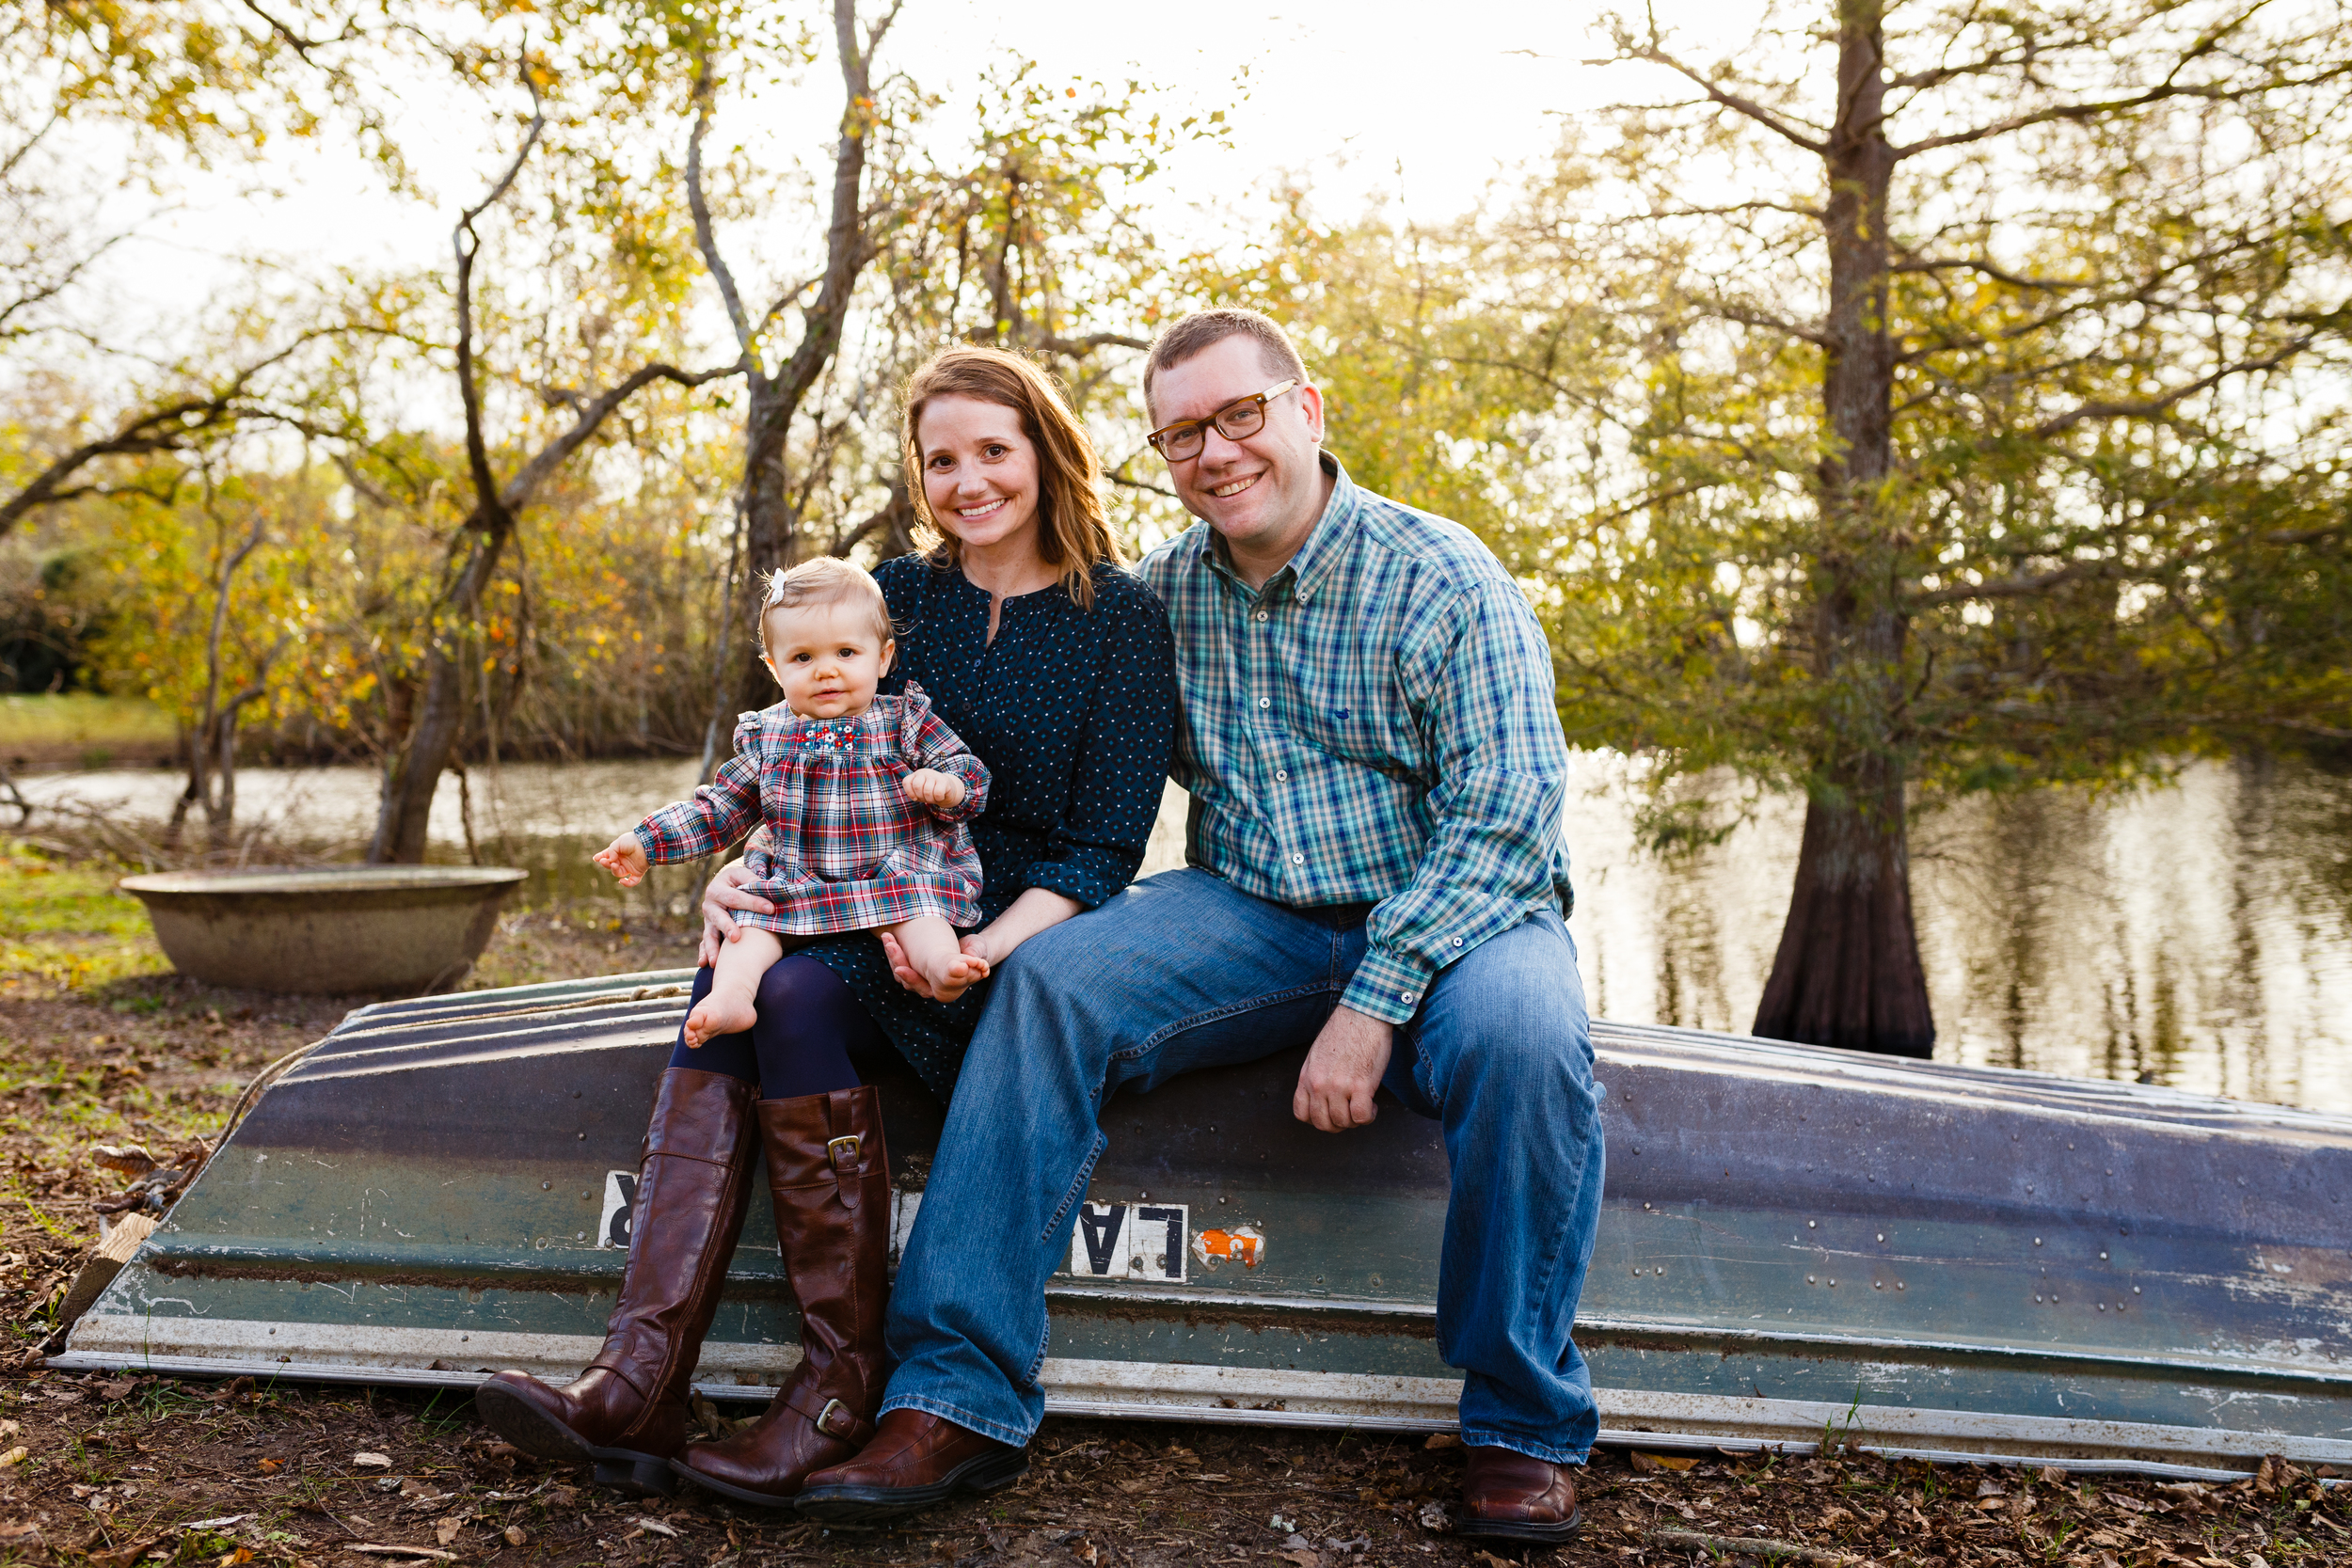 Family-child-portrait-lafayette-broussard-youngsville-photographer-1.jpg